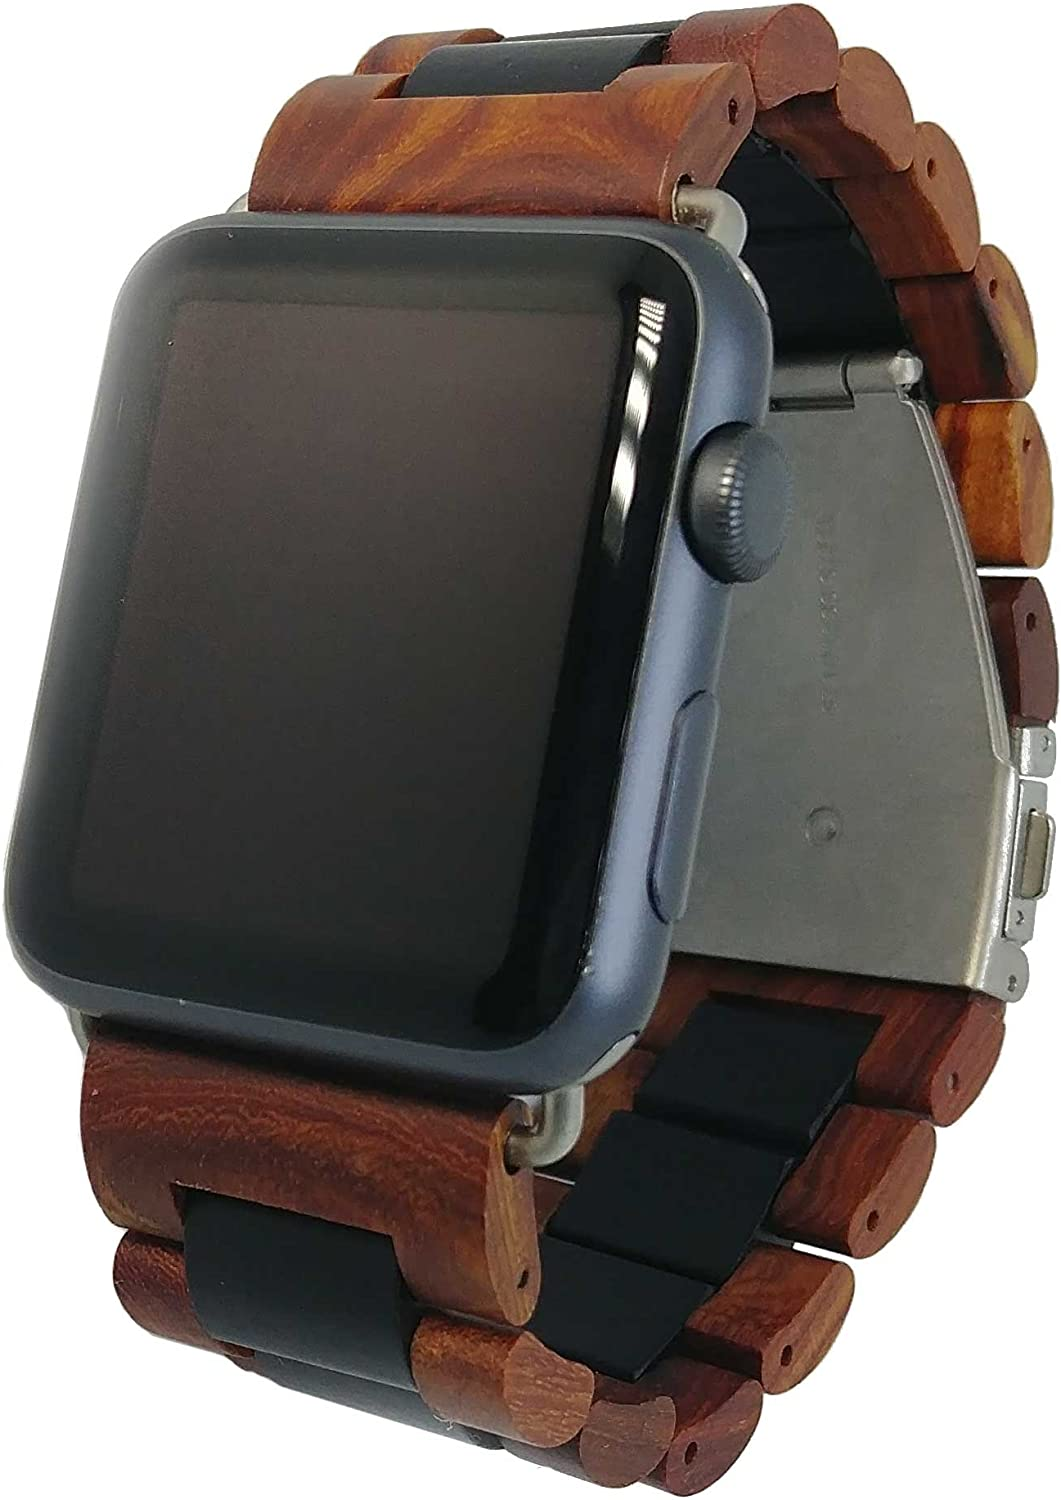 Ottm Apple Watch Band - 42 mm Unique Hardwood Watch Strap for Apple iWatch with Extra Links and Tool for Resizing (Sandalwood)